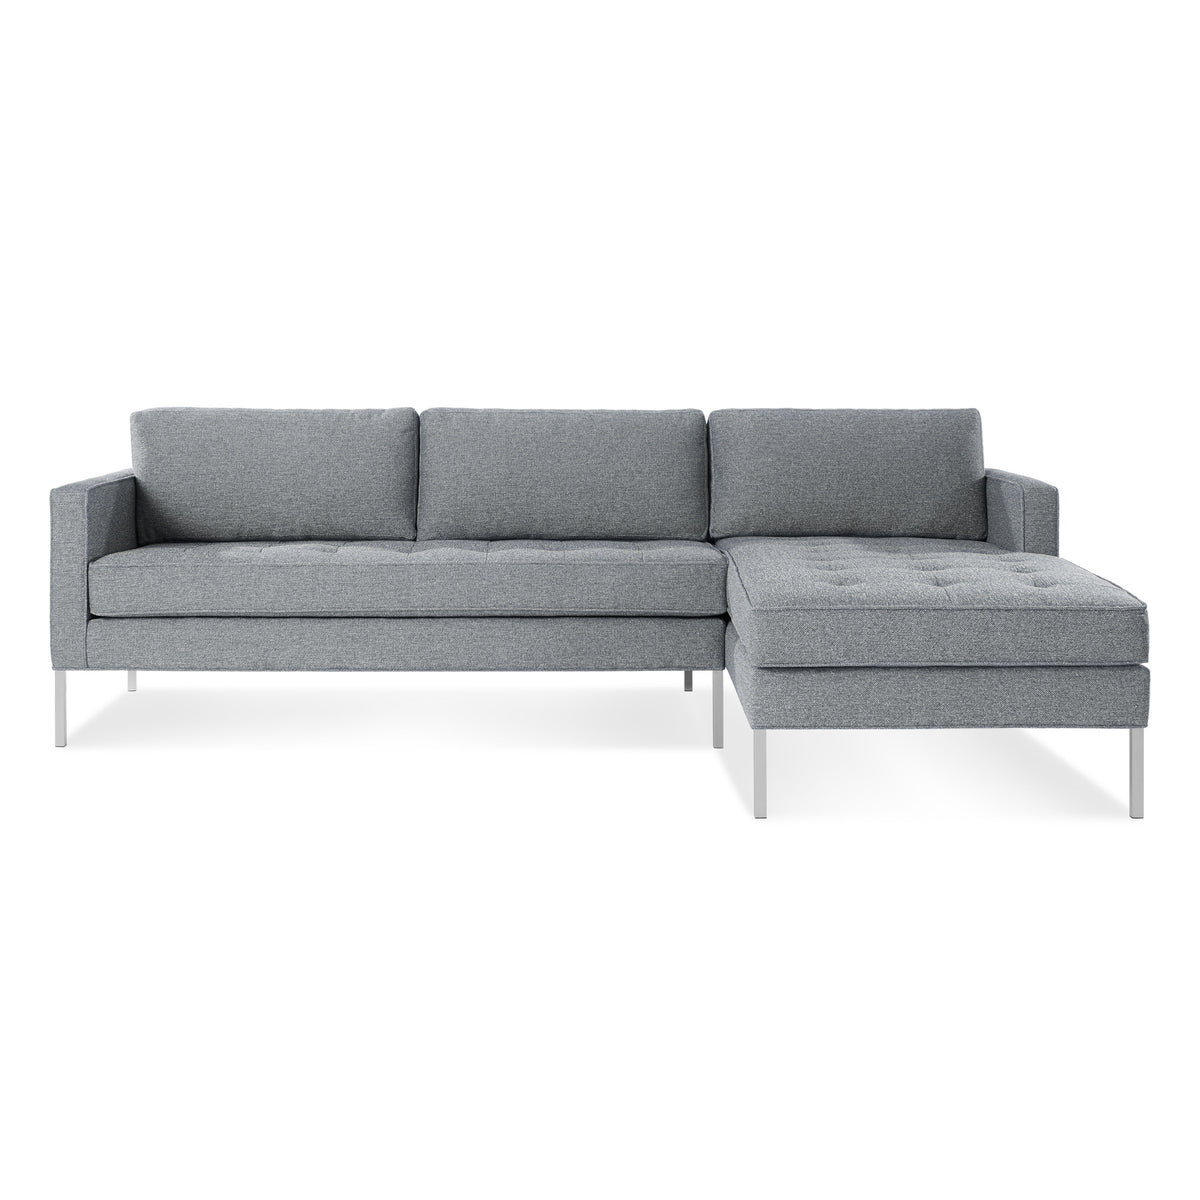 Paramount Sofa With Chaise Hut K